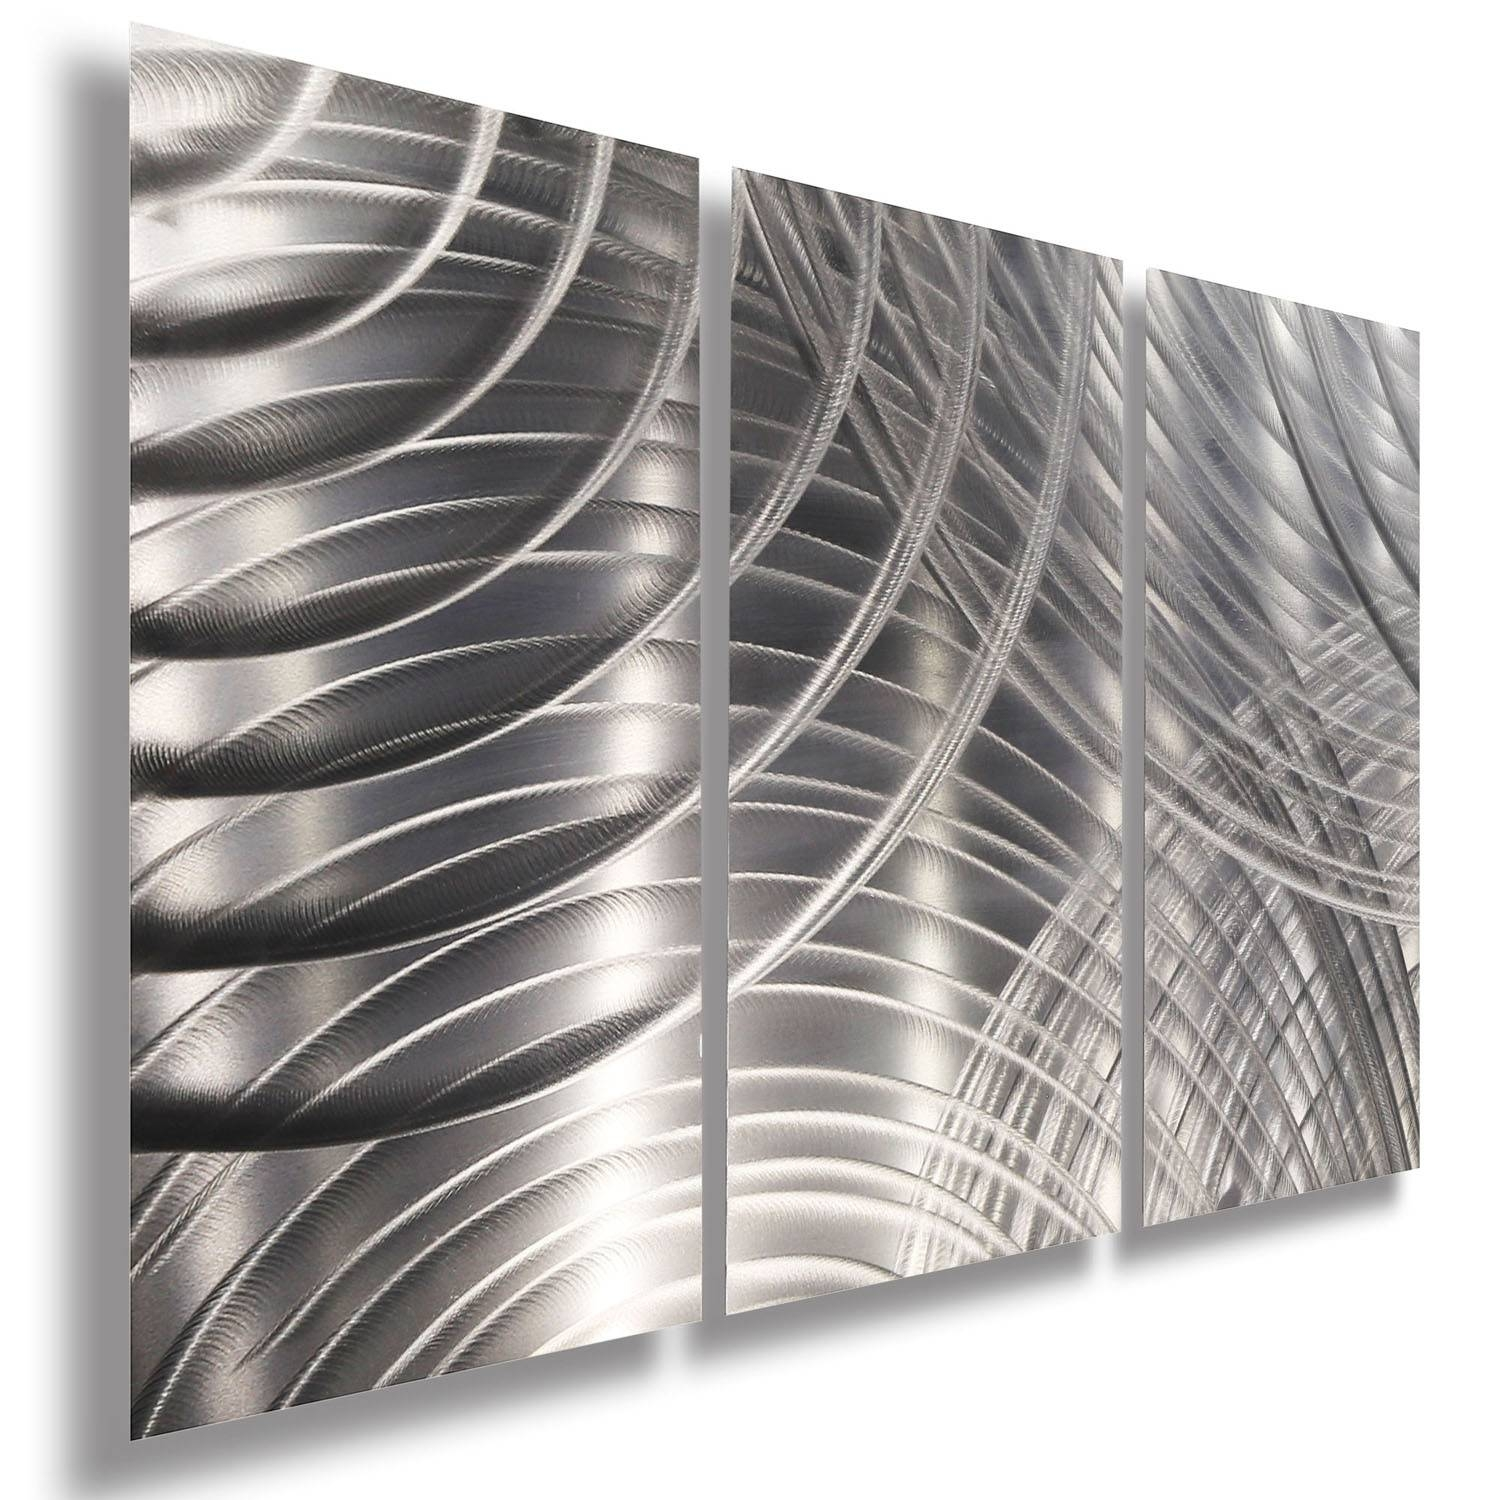 Equinox Ii 3p – All Silver 3 Panel Metal Wall Art Accentjon In Best And Newest Black And Silver Metal Wall Art (View 16 of 20)